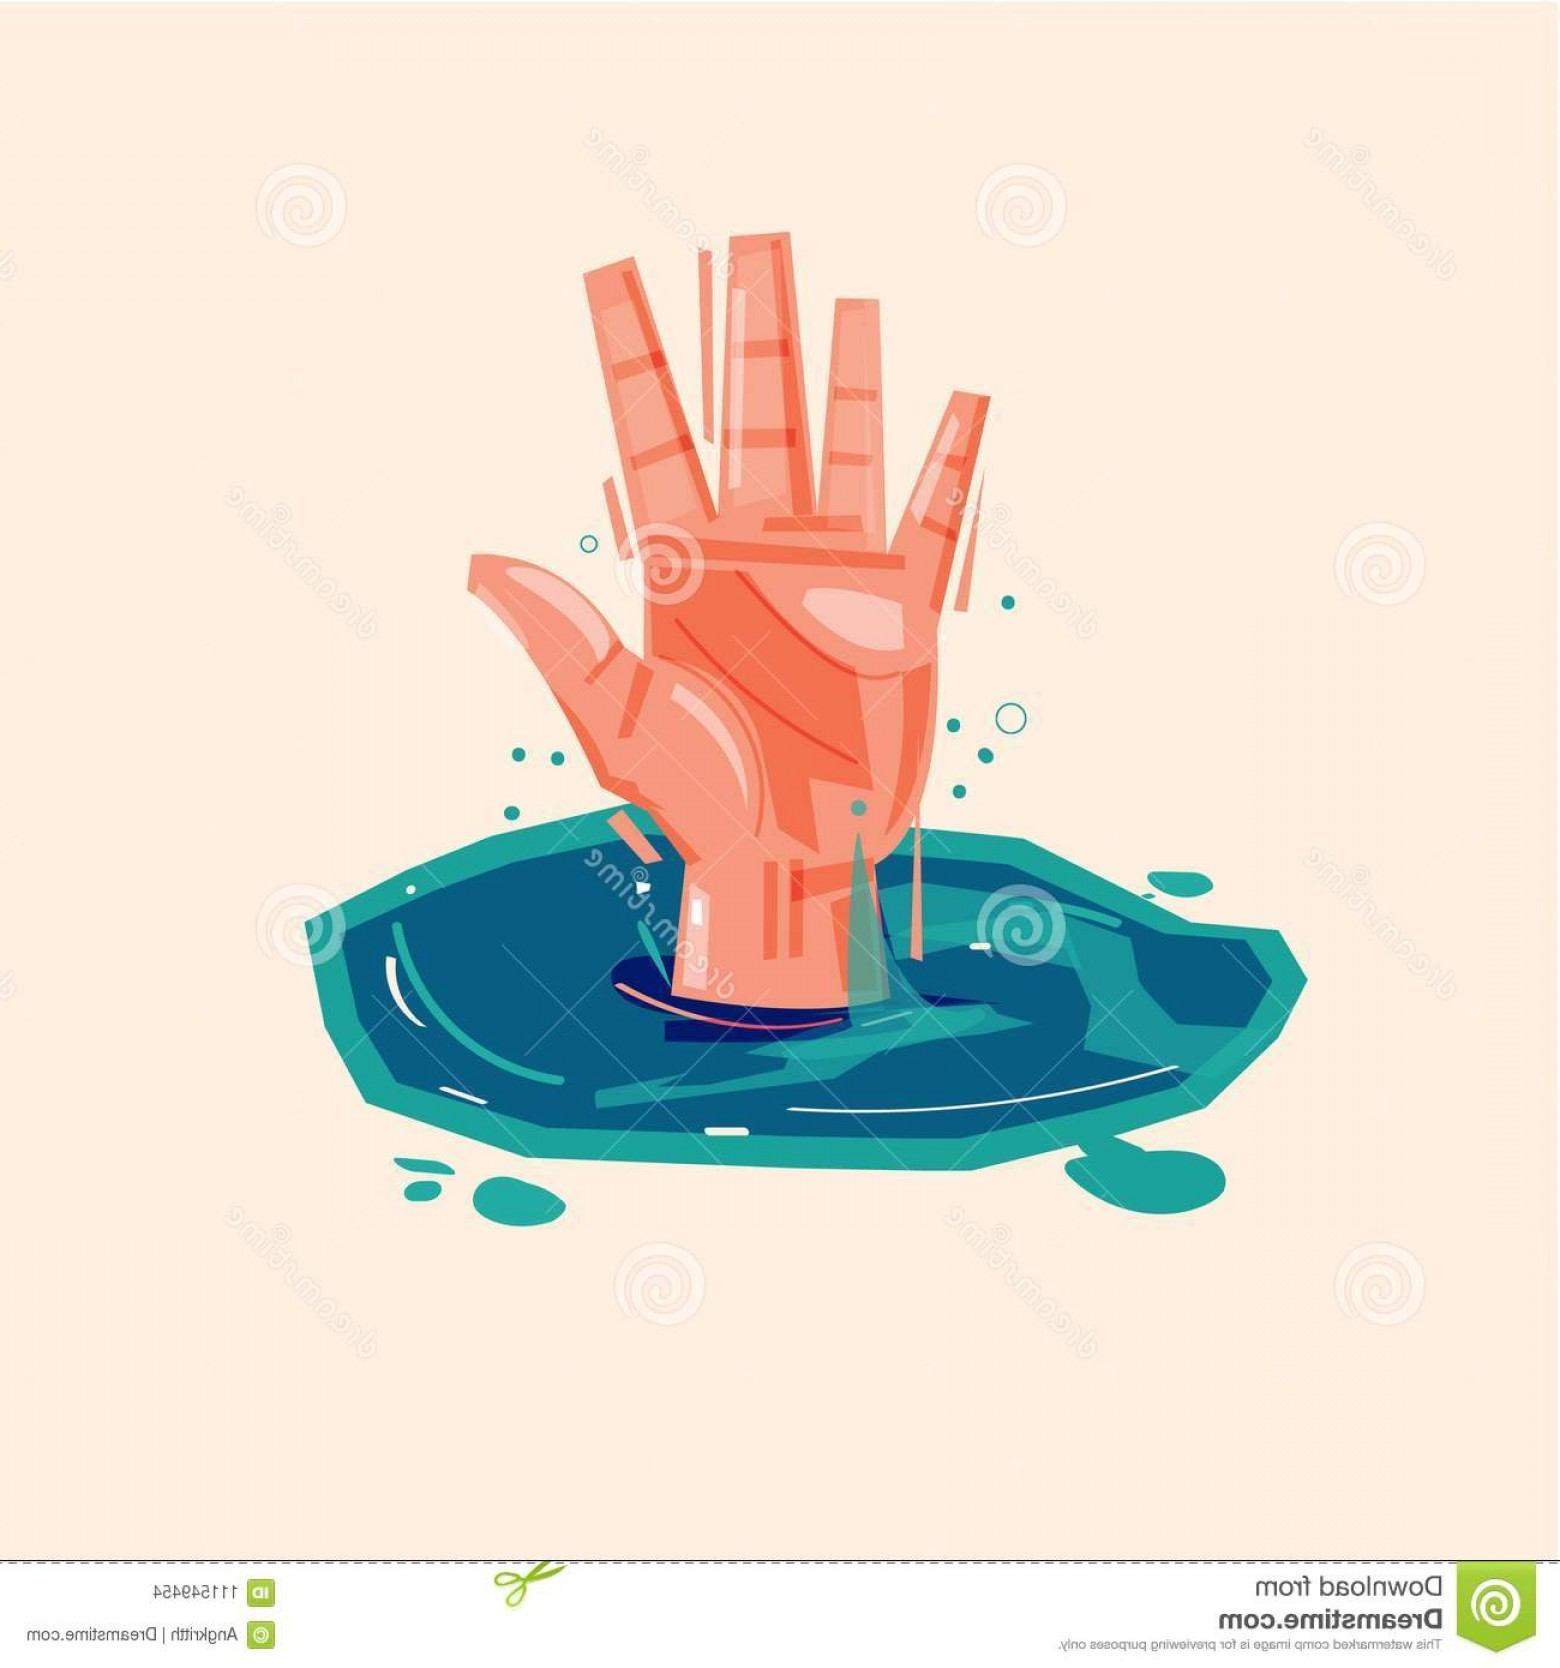 Man Drowning Vector: Hand Drowning Man Water Asking Help Vector Illustration Hand Drowning Man Water Asking Help Vector Image